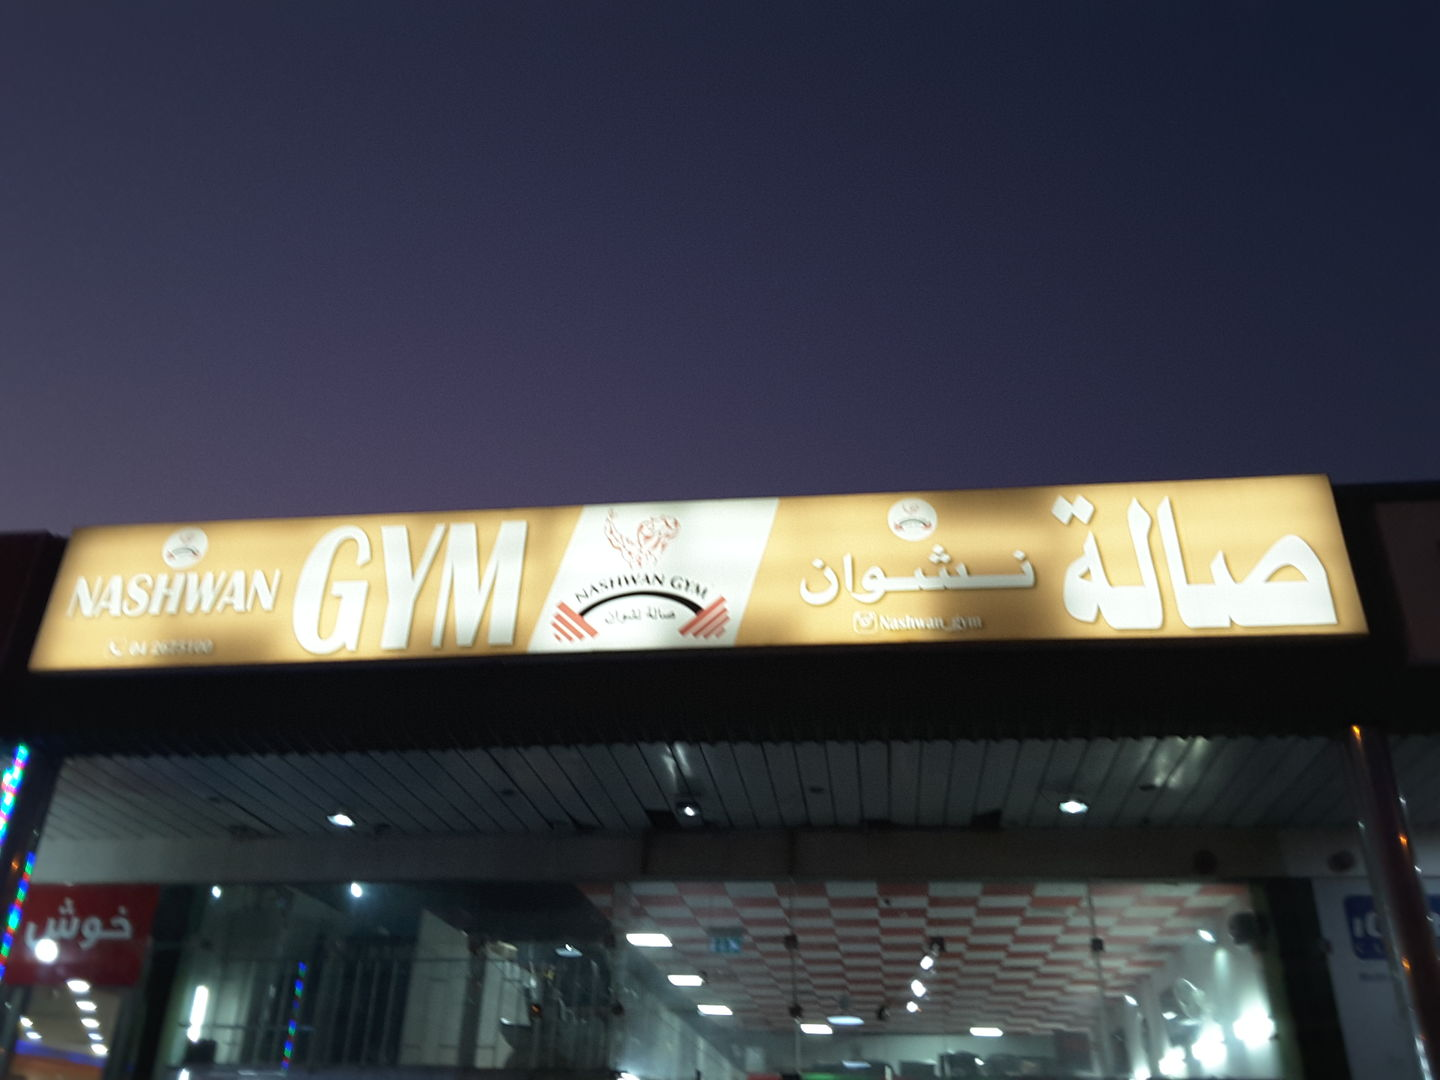 HiDubai-business-nashwan-gym-sports-fitness-gyms-fitness-centres-pools-al-qusais-1-dubai-2